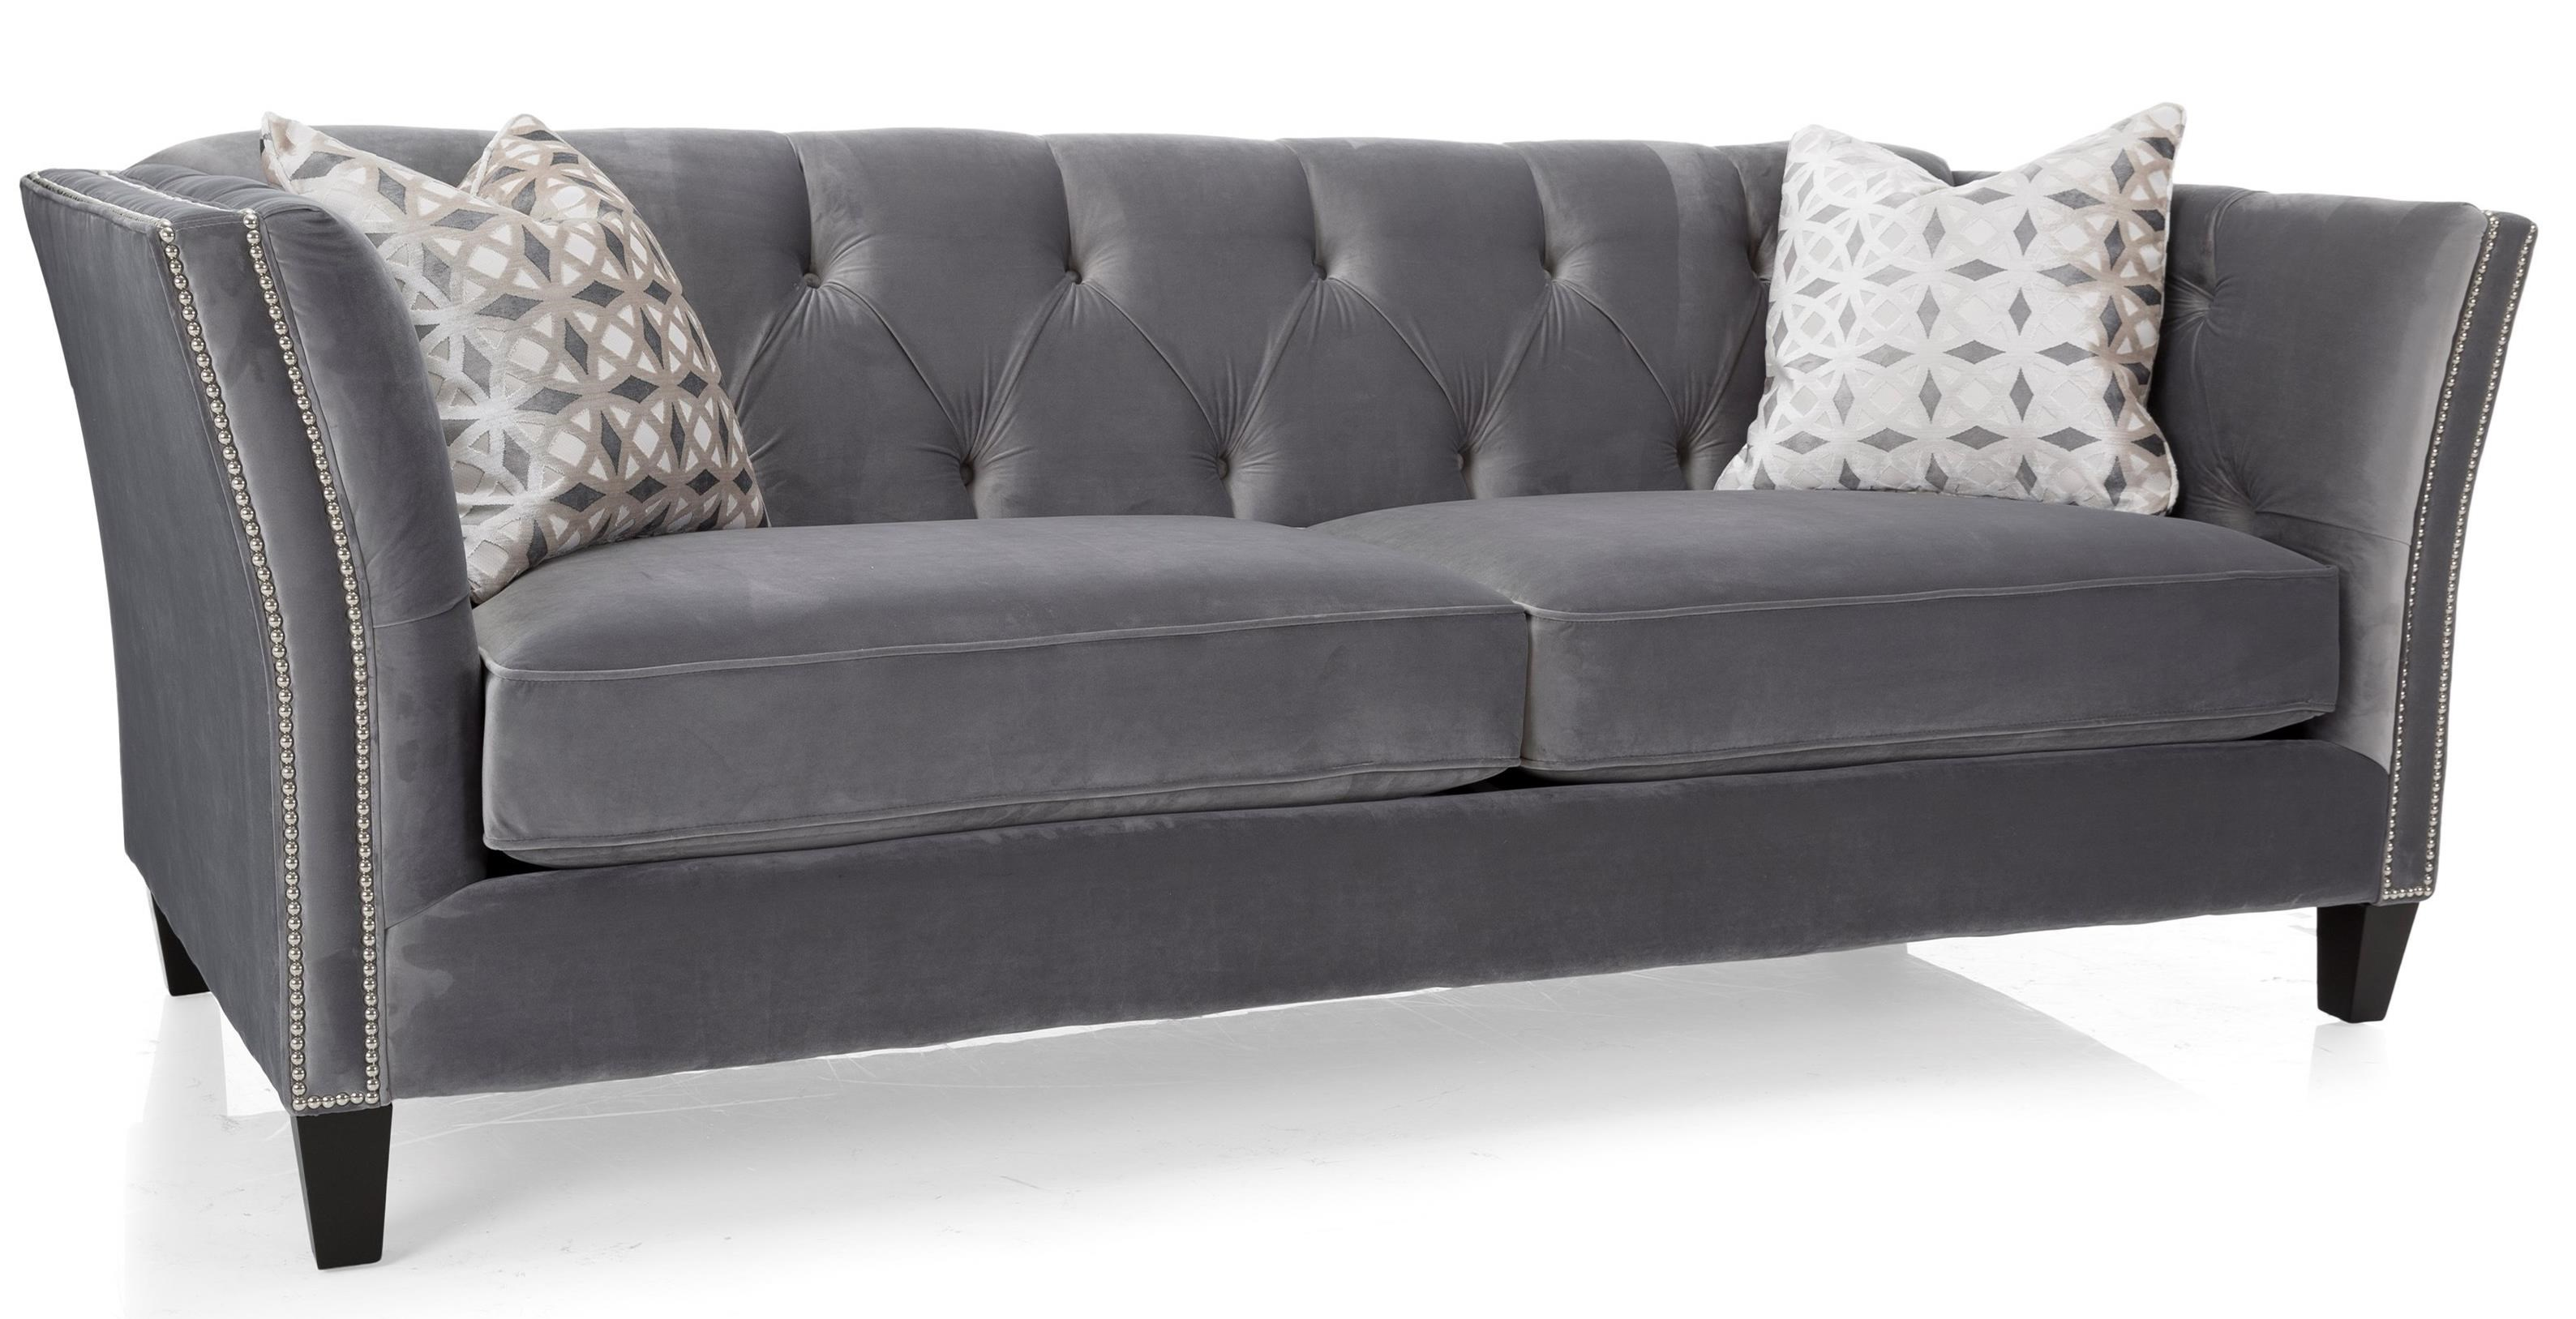 2555 Sofa by Decor-Rest at Rooms for Less